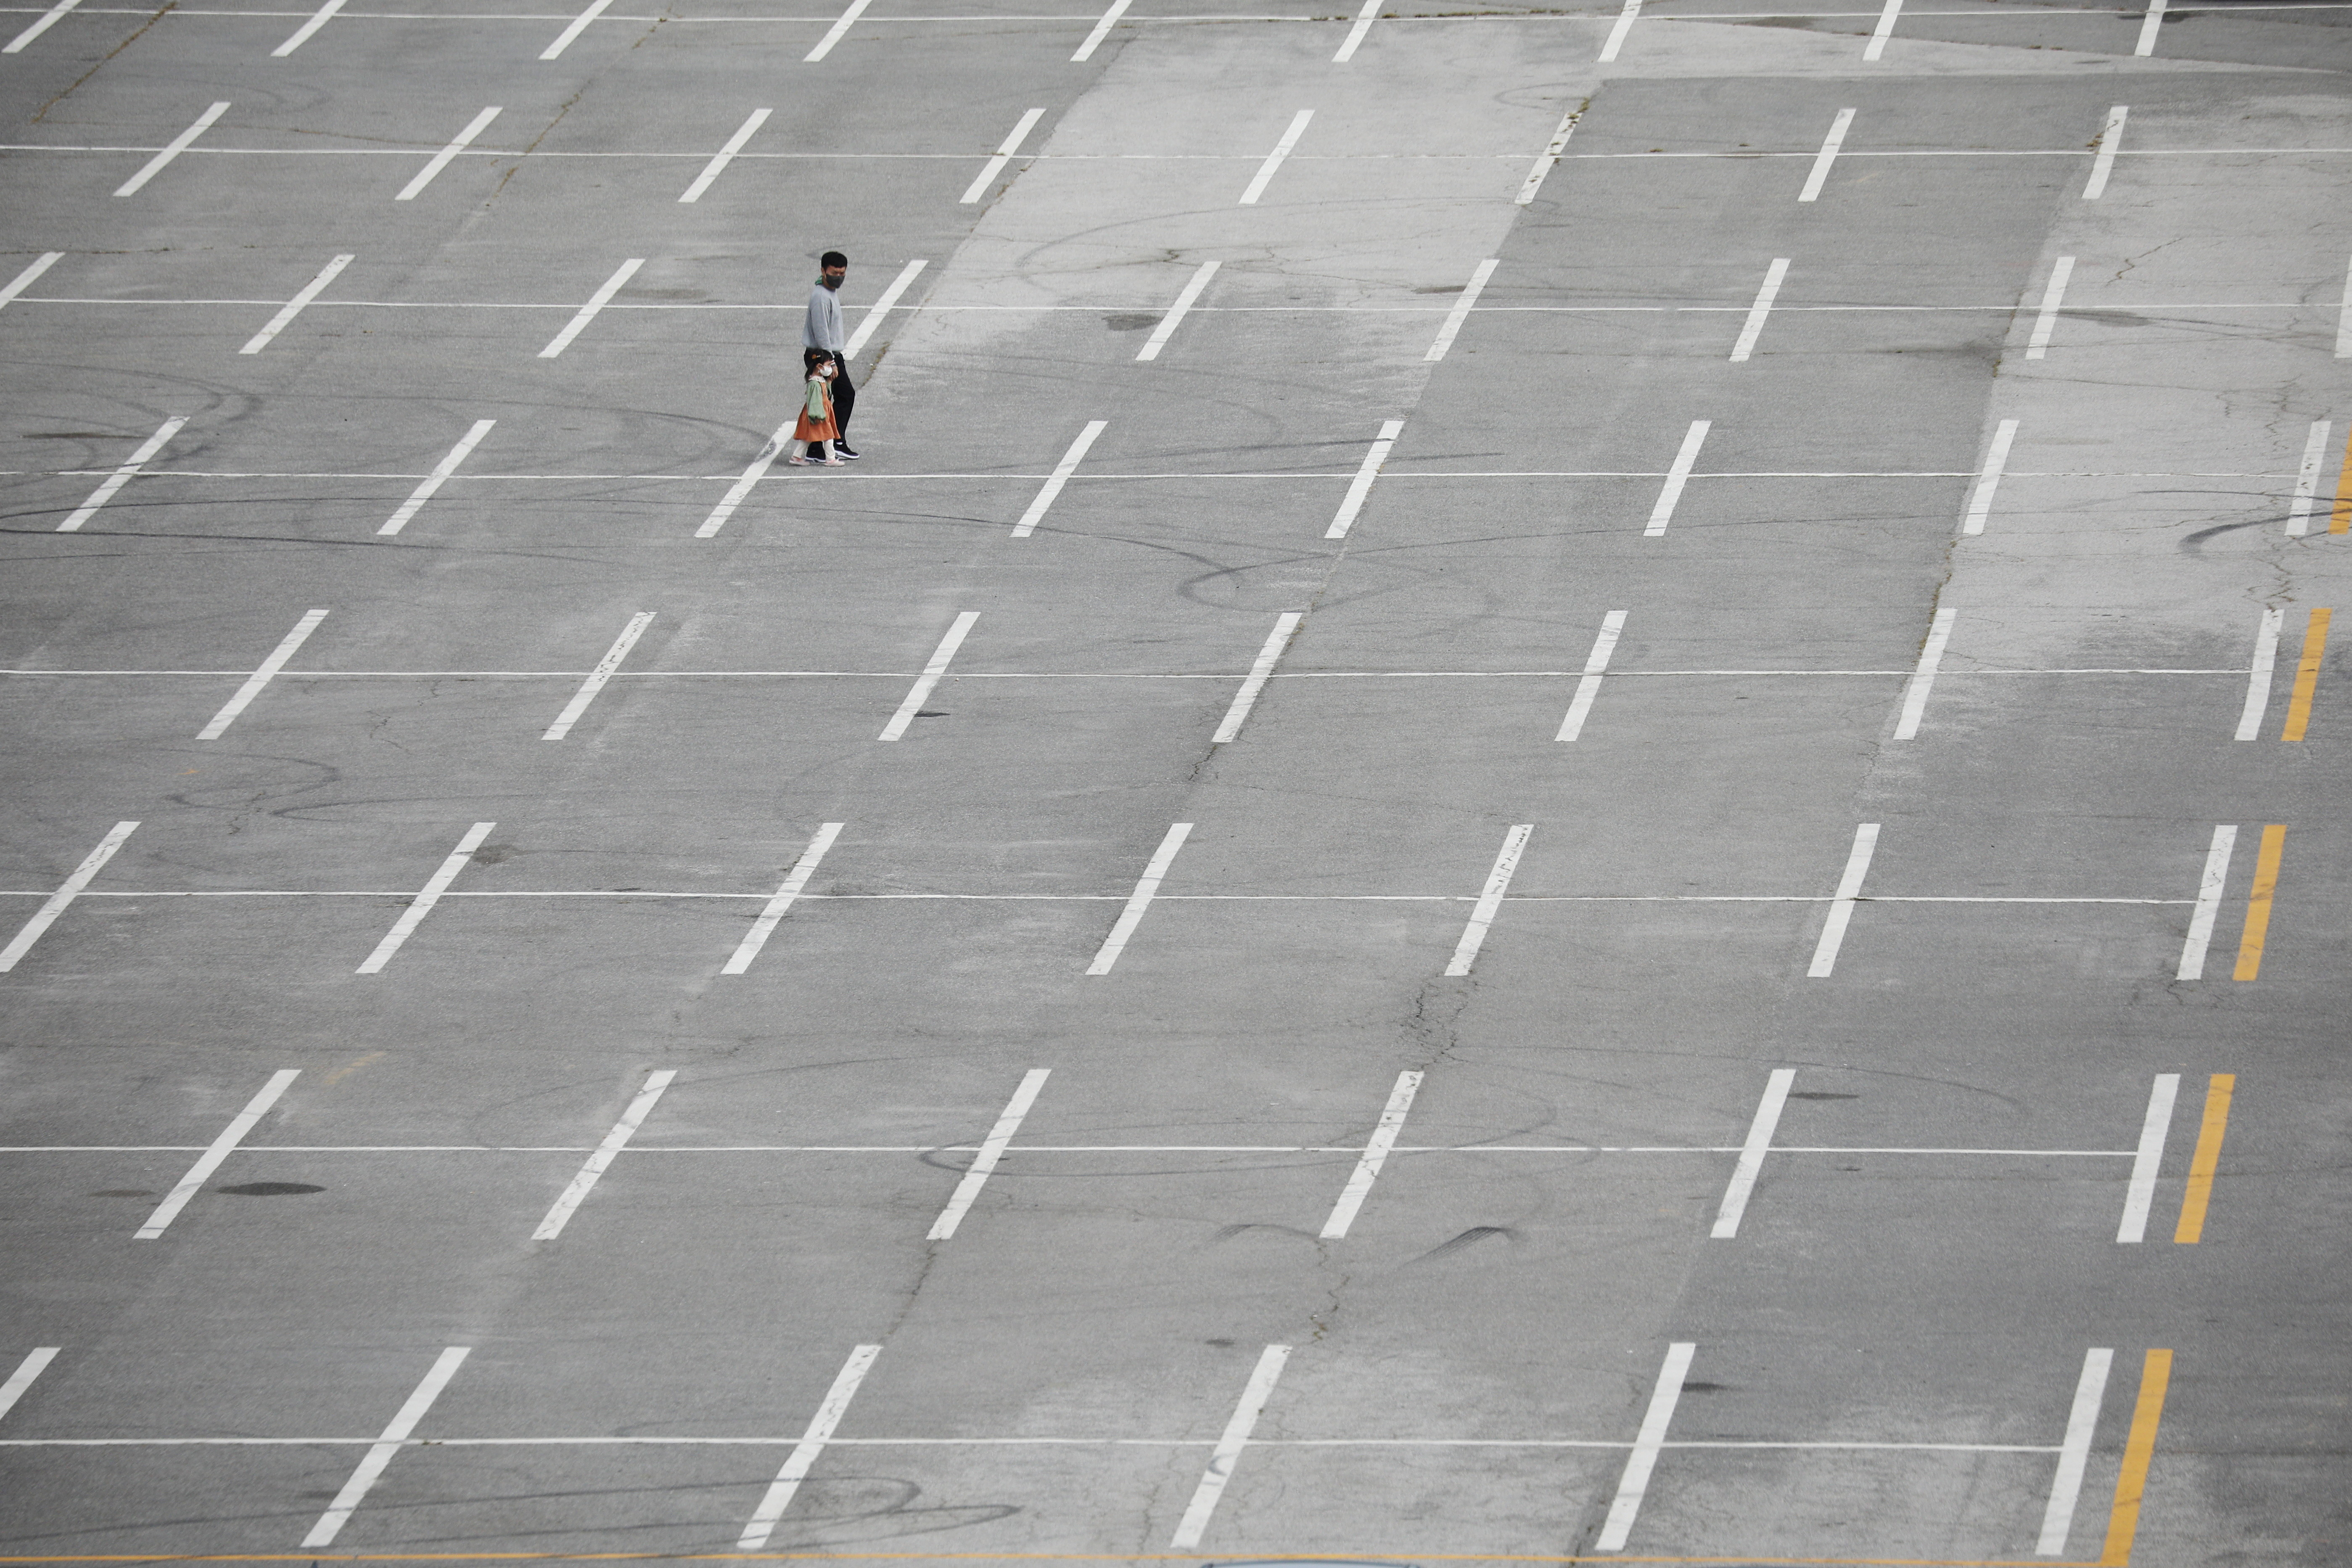 A father and his daughter wear masks to avoid contracting the coronavirus disease (COVID-19) as they walk on an empty parking lot of a park in Paju, South Korea, September 28, 2021. REUTERS/Kim Hong-Ji - RC2RYP92GJ2A